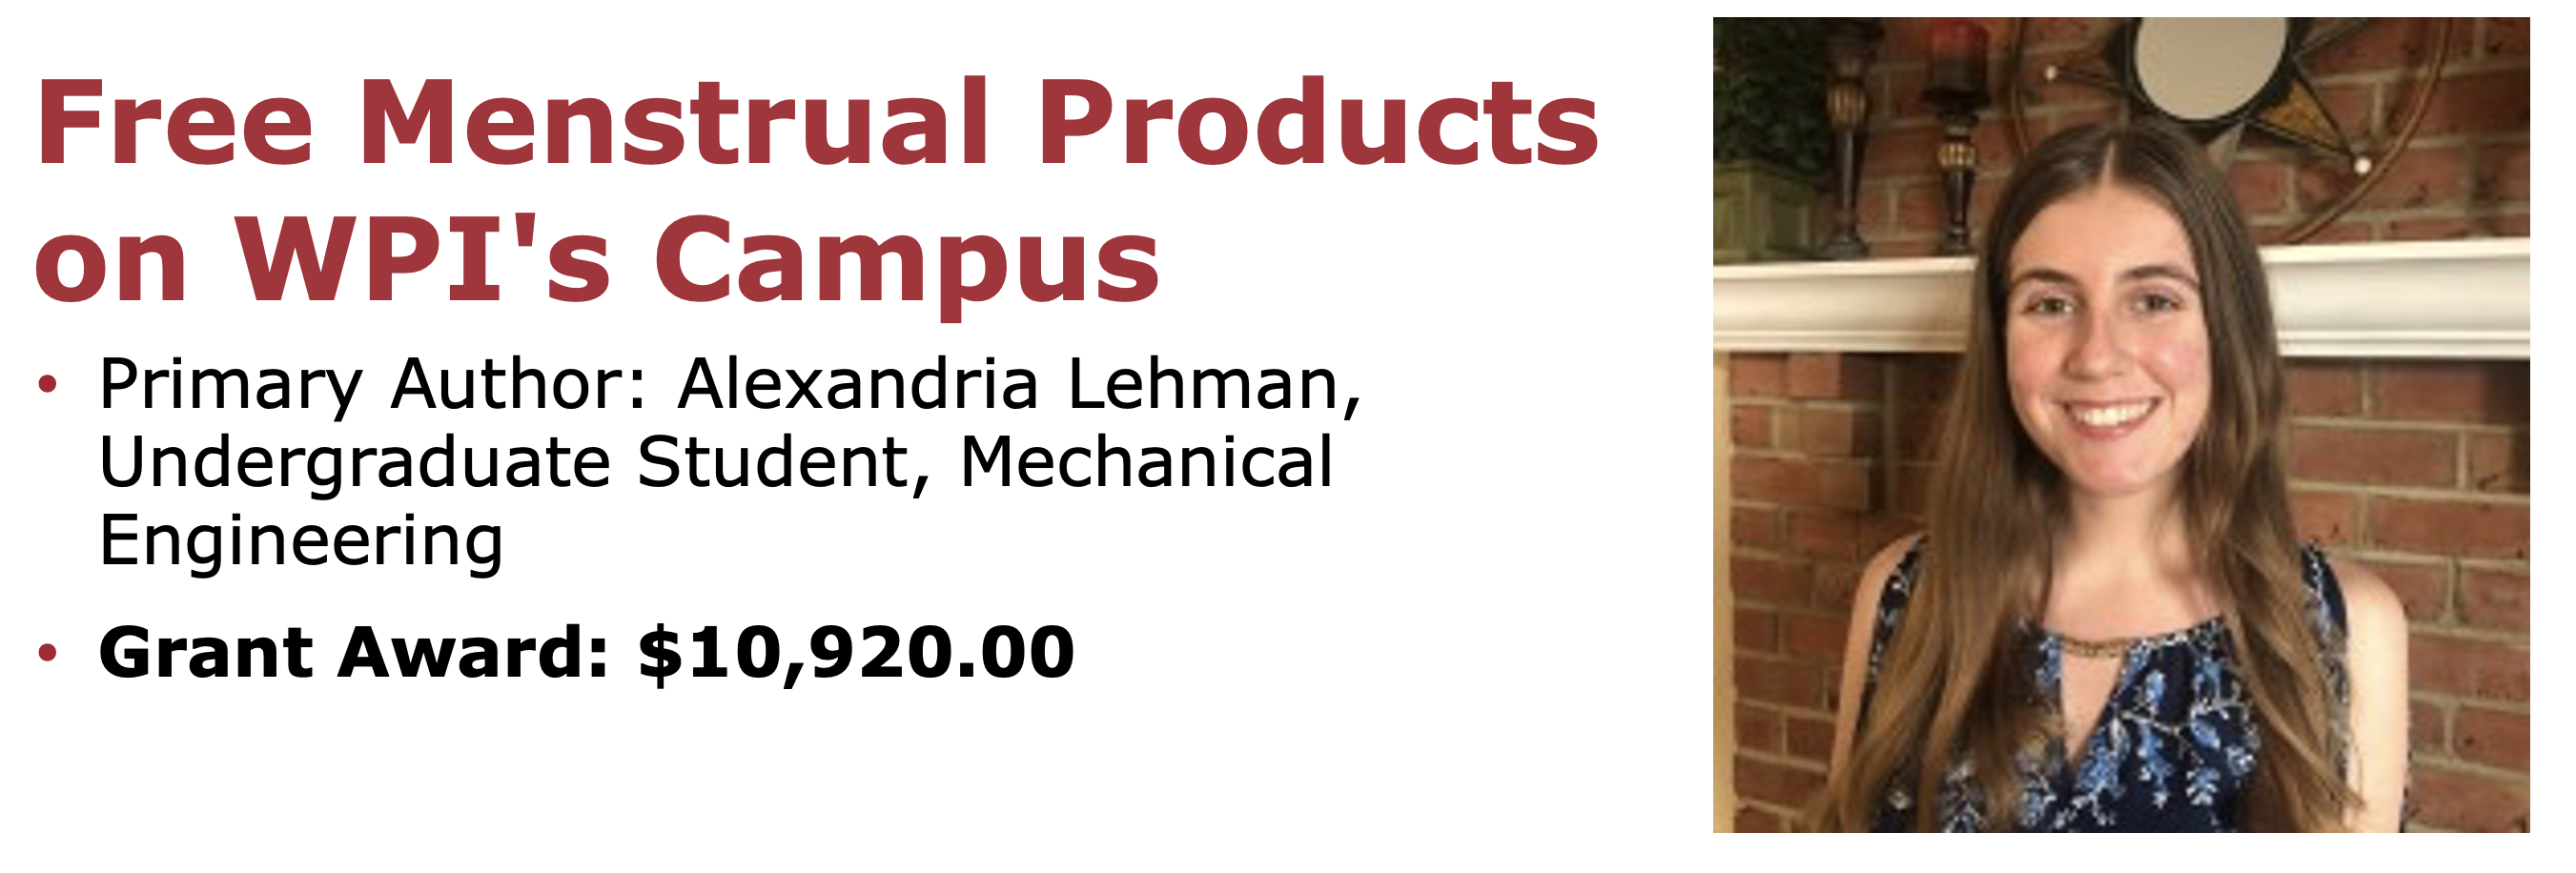 Free Menstrual Products on WPI's Campus